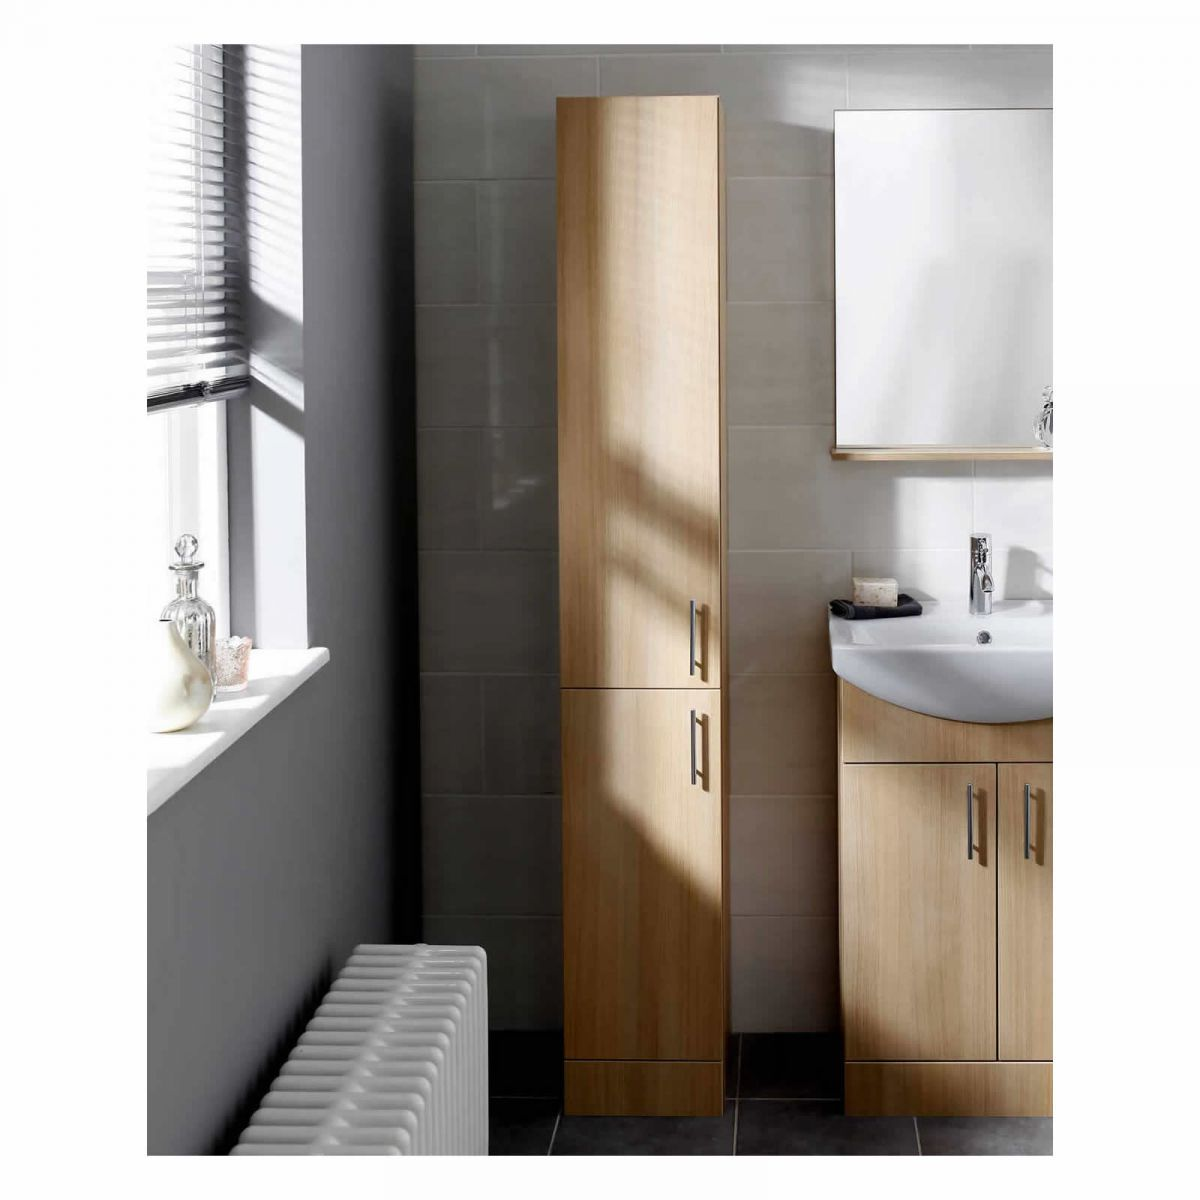 Tallboy Bathroom Cabinets Tallboy Bathroom Cabinets Uk House Decor